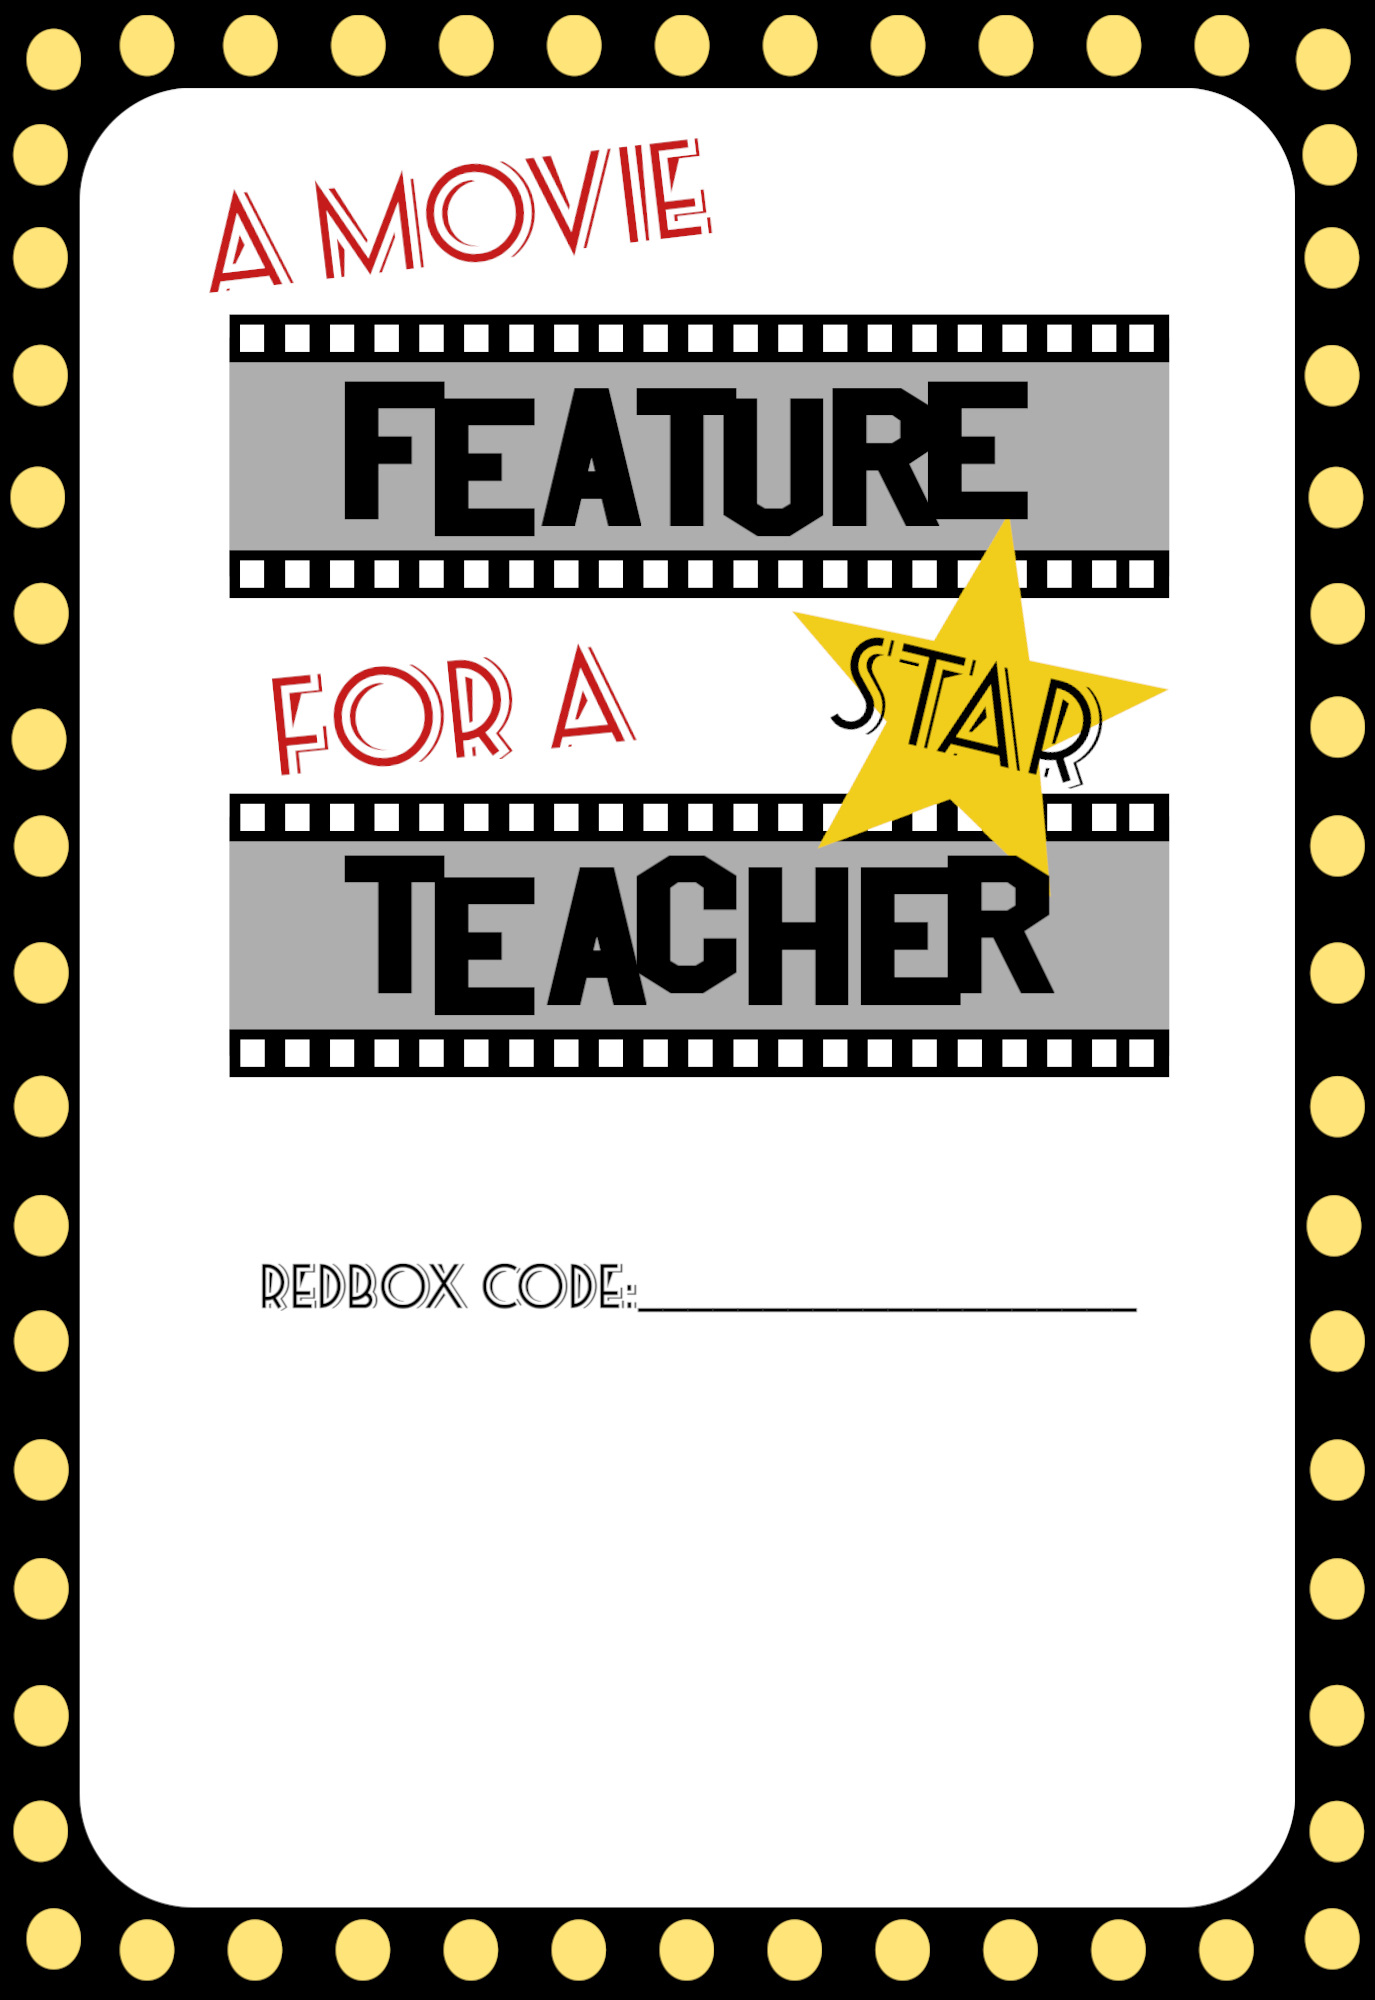 image about Redbox Gift Card Printable called Basic Instructor Presents Video Free of charge Printable - Paper Path Design and style